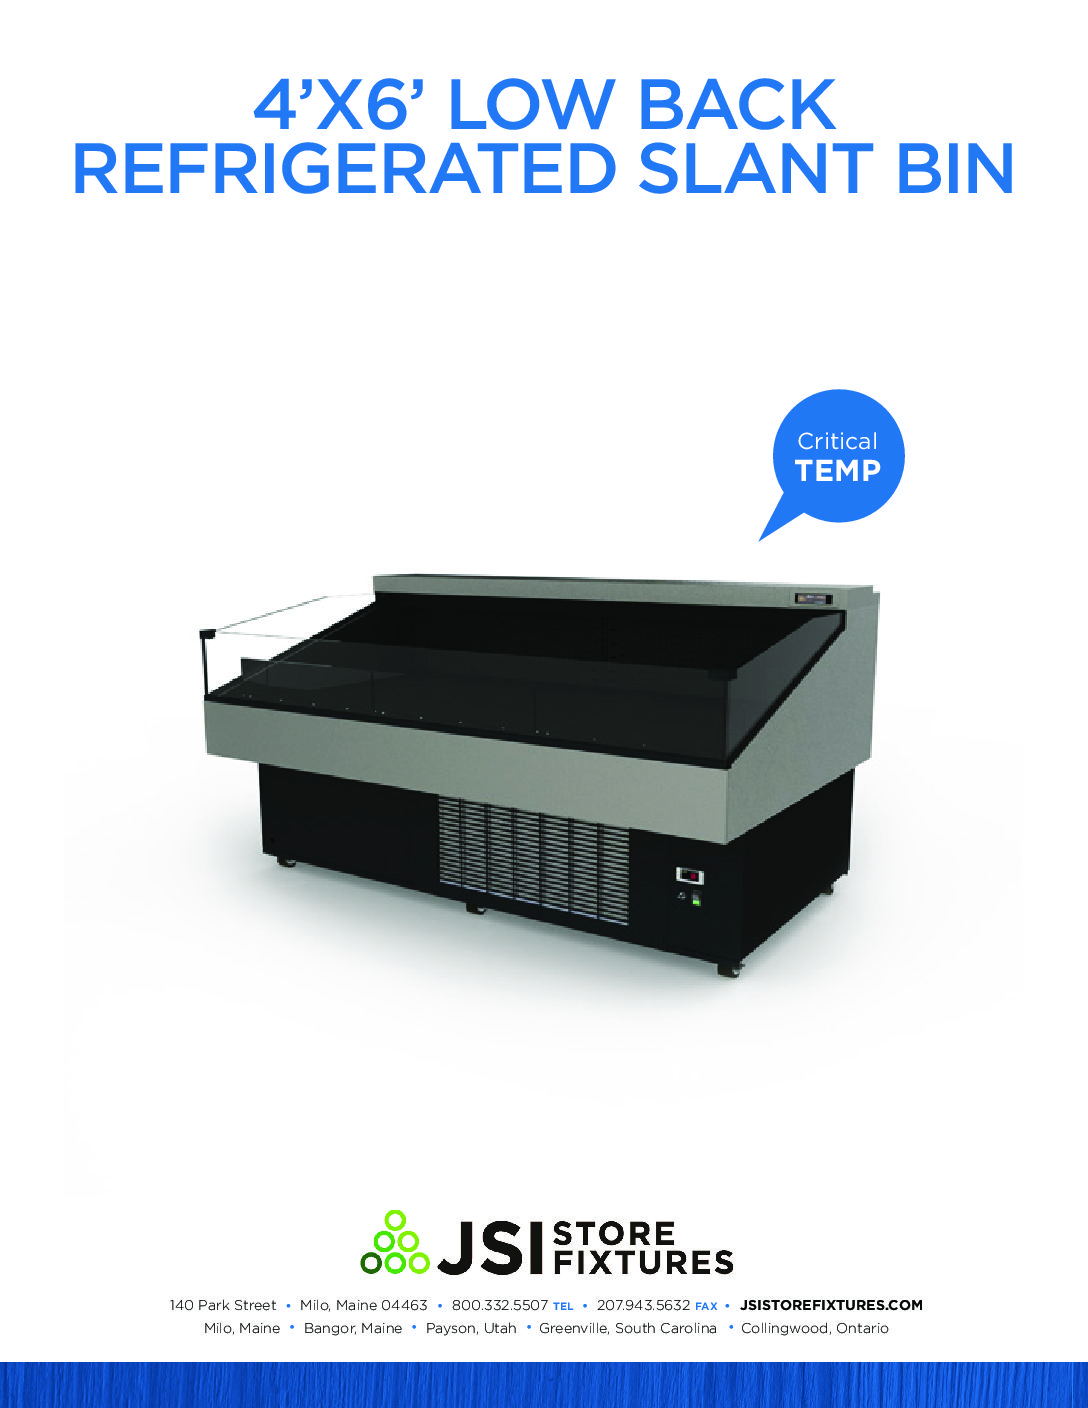 4'x6' Low Back Refrigerated Slant Bin Spec Sheet